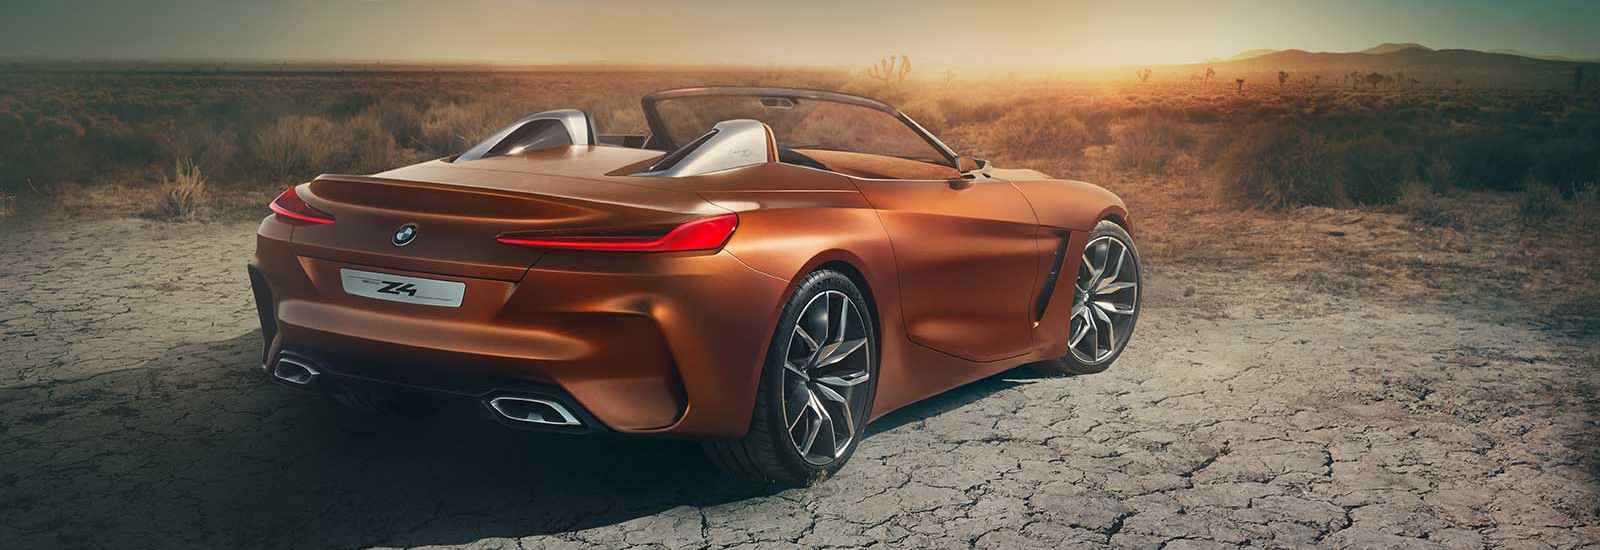 nouvelle bmw 2018.  nouvelle price and release date and nouvelle bmw 2018